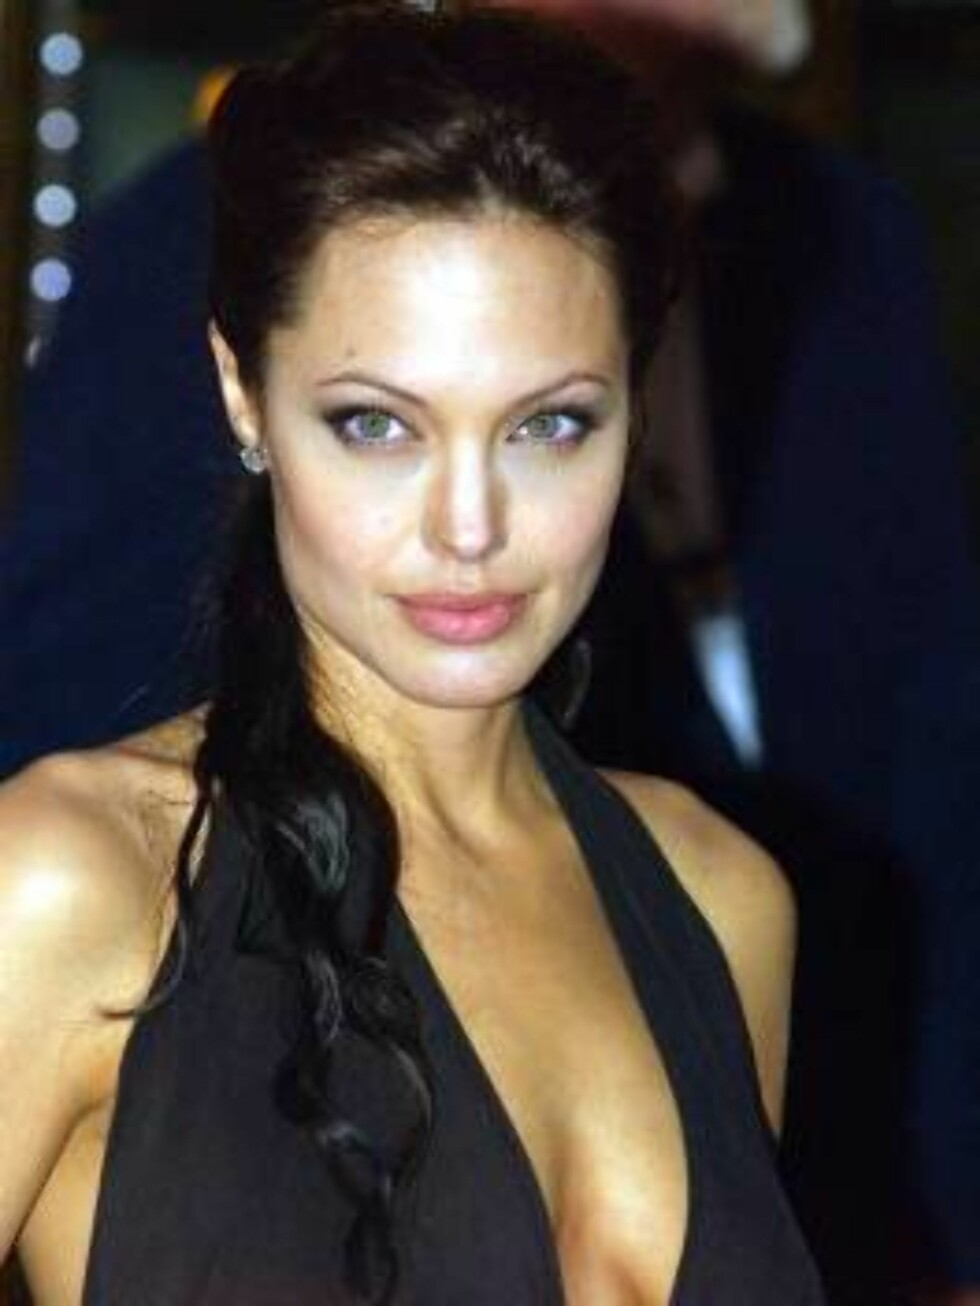 Angelina Jolie, the star of Tomb Raider: The Cradle of Life, arrives at the British Premiere of the movie, at a theatre in London's Leicester Square, Tuesday Aug. 19 2003,(AP Photo/Anna Branthwaite) Foto: AP/Scanpix